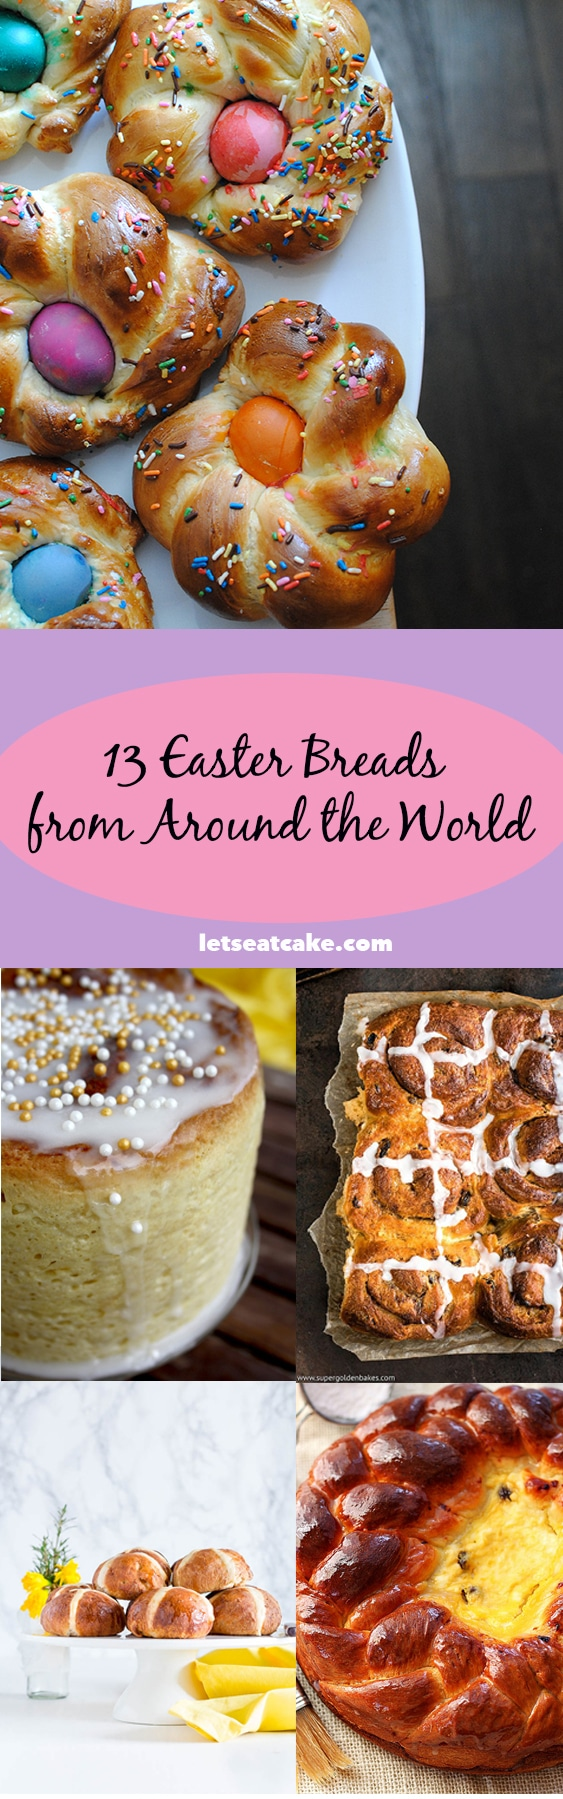 13 Easter Breads from Around the World